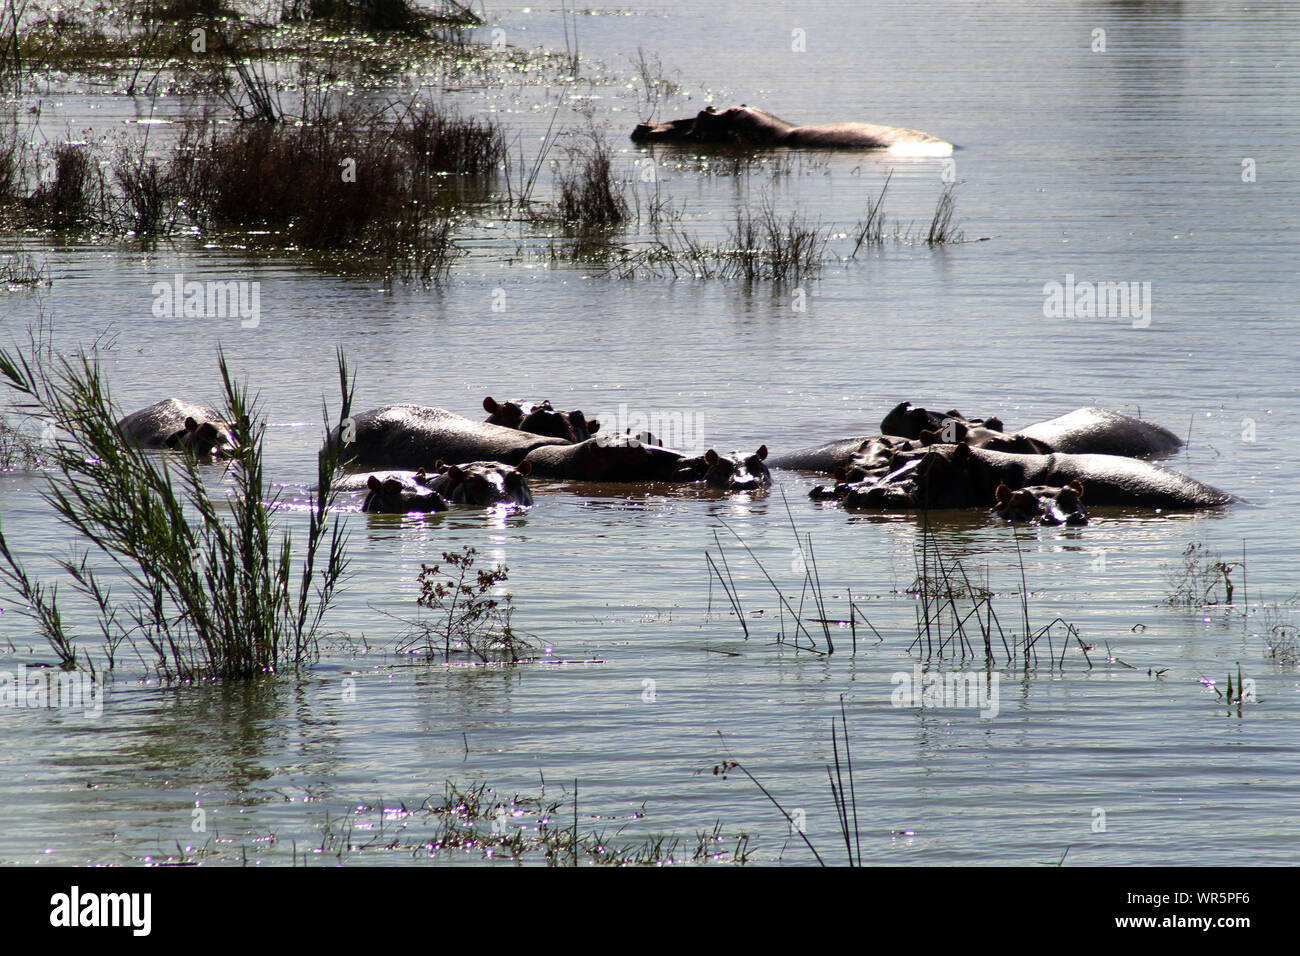 Pod of hippopotamus relaxing in the water at Pongolapoort Dam, South Africa Stock Photo